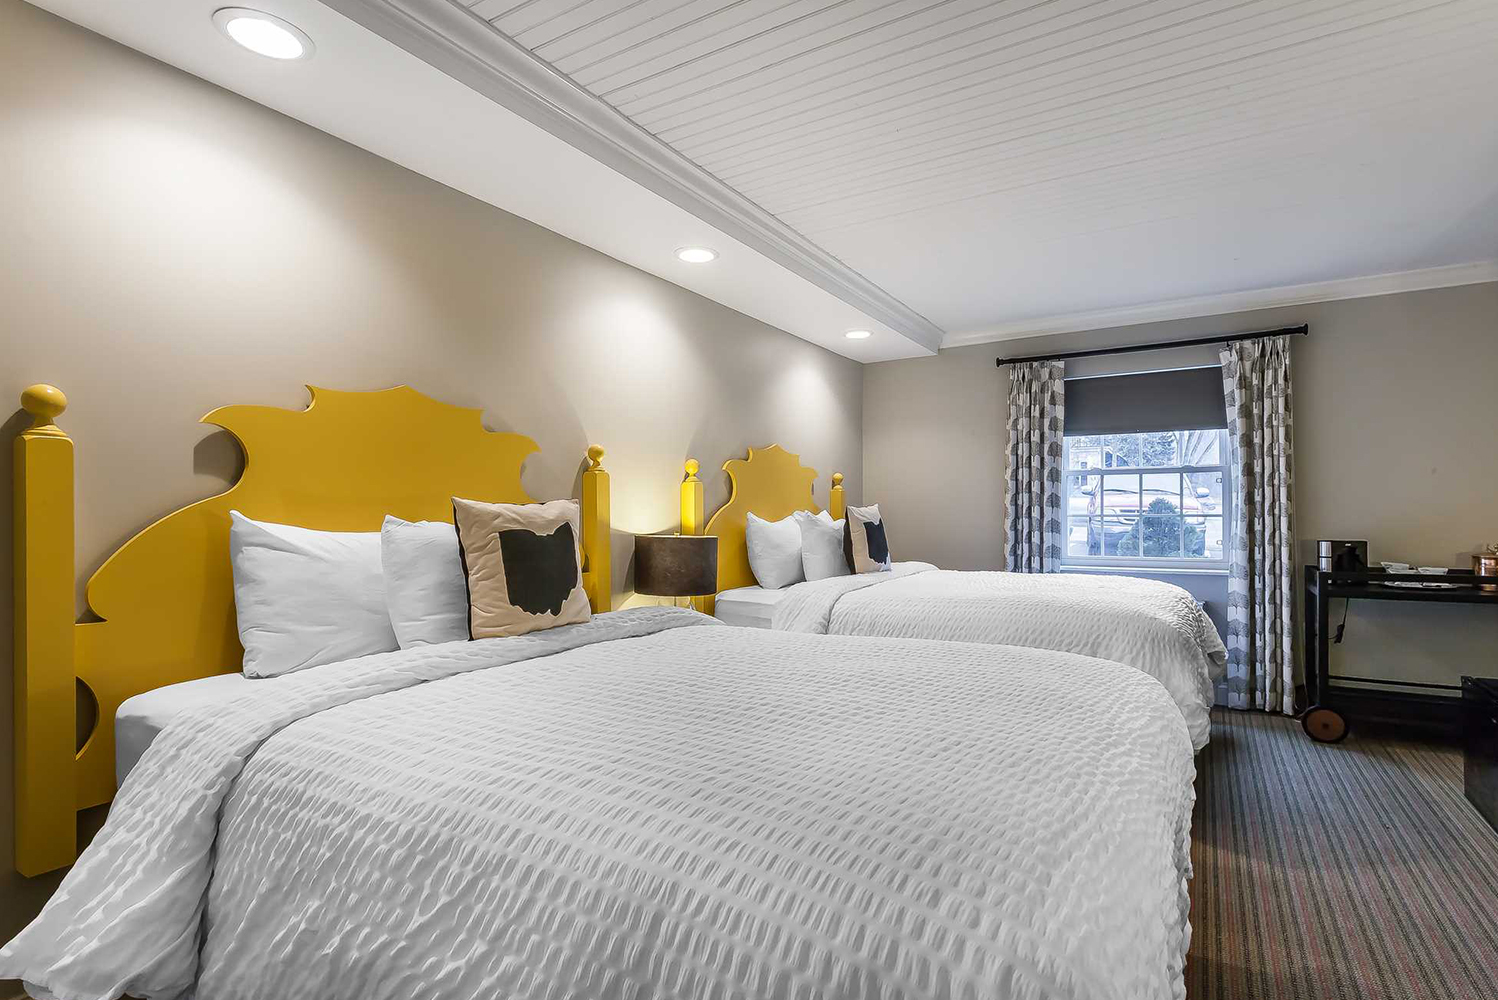 The inn's color scheme includes shades of white, grey, black and off-black, with pops of vibrant color for contrast.